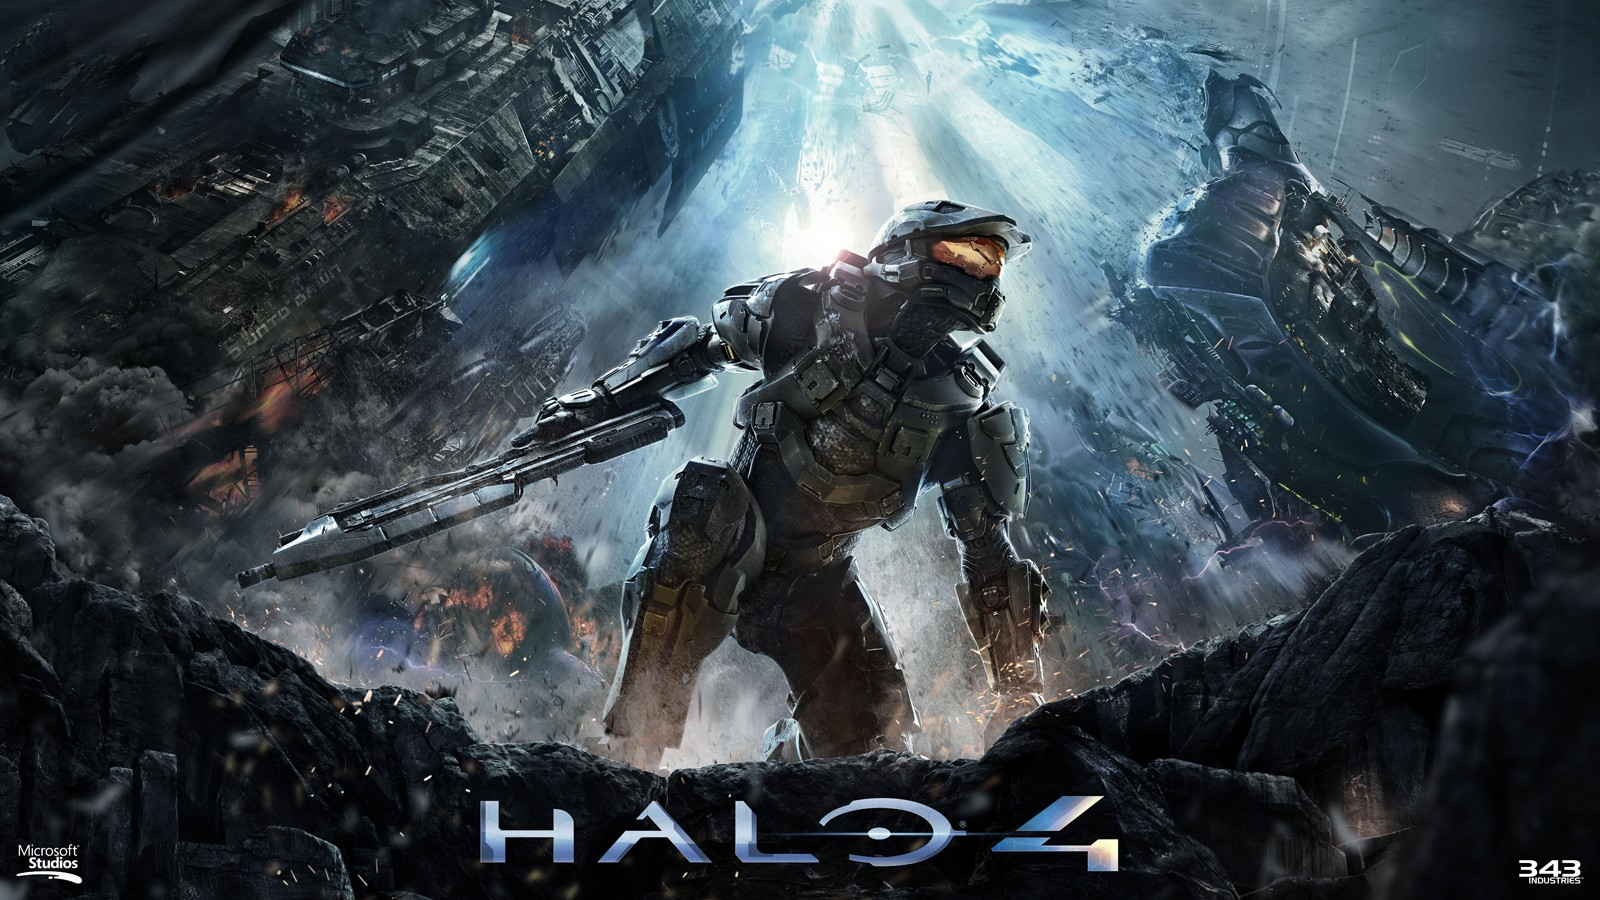 Halo The Master Chief Collection Brings Halo 1 Through 4 On